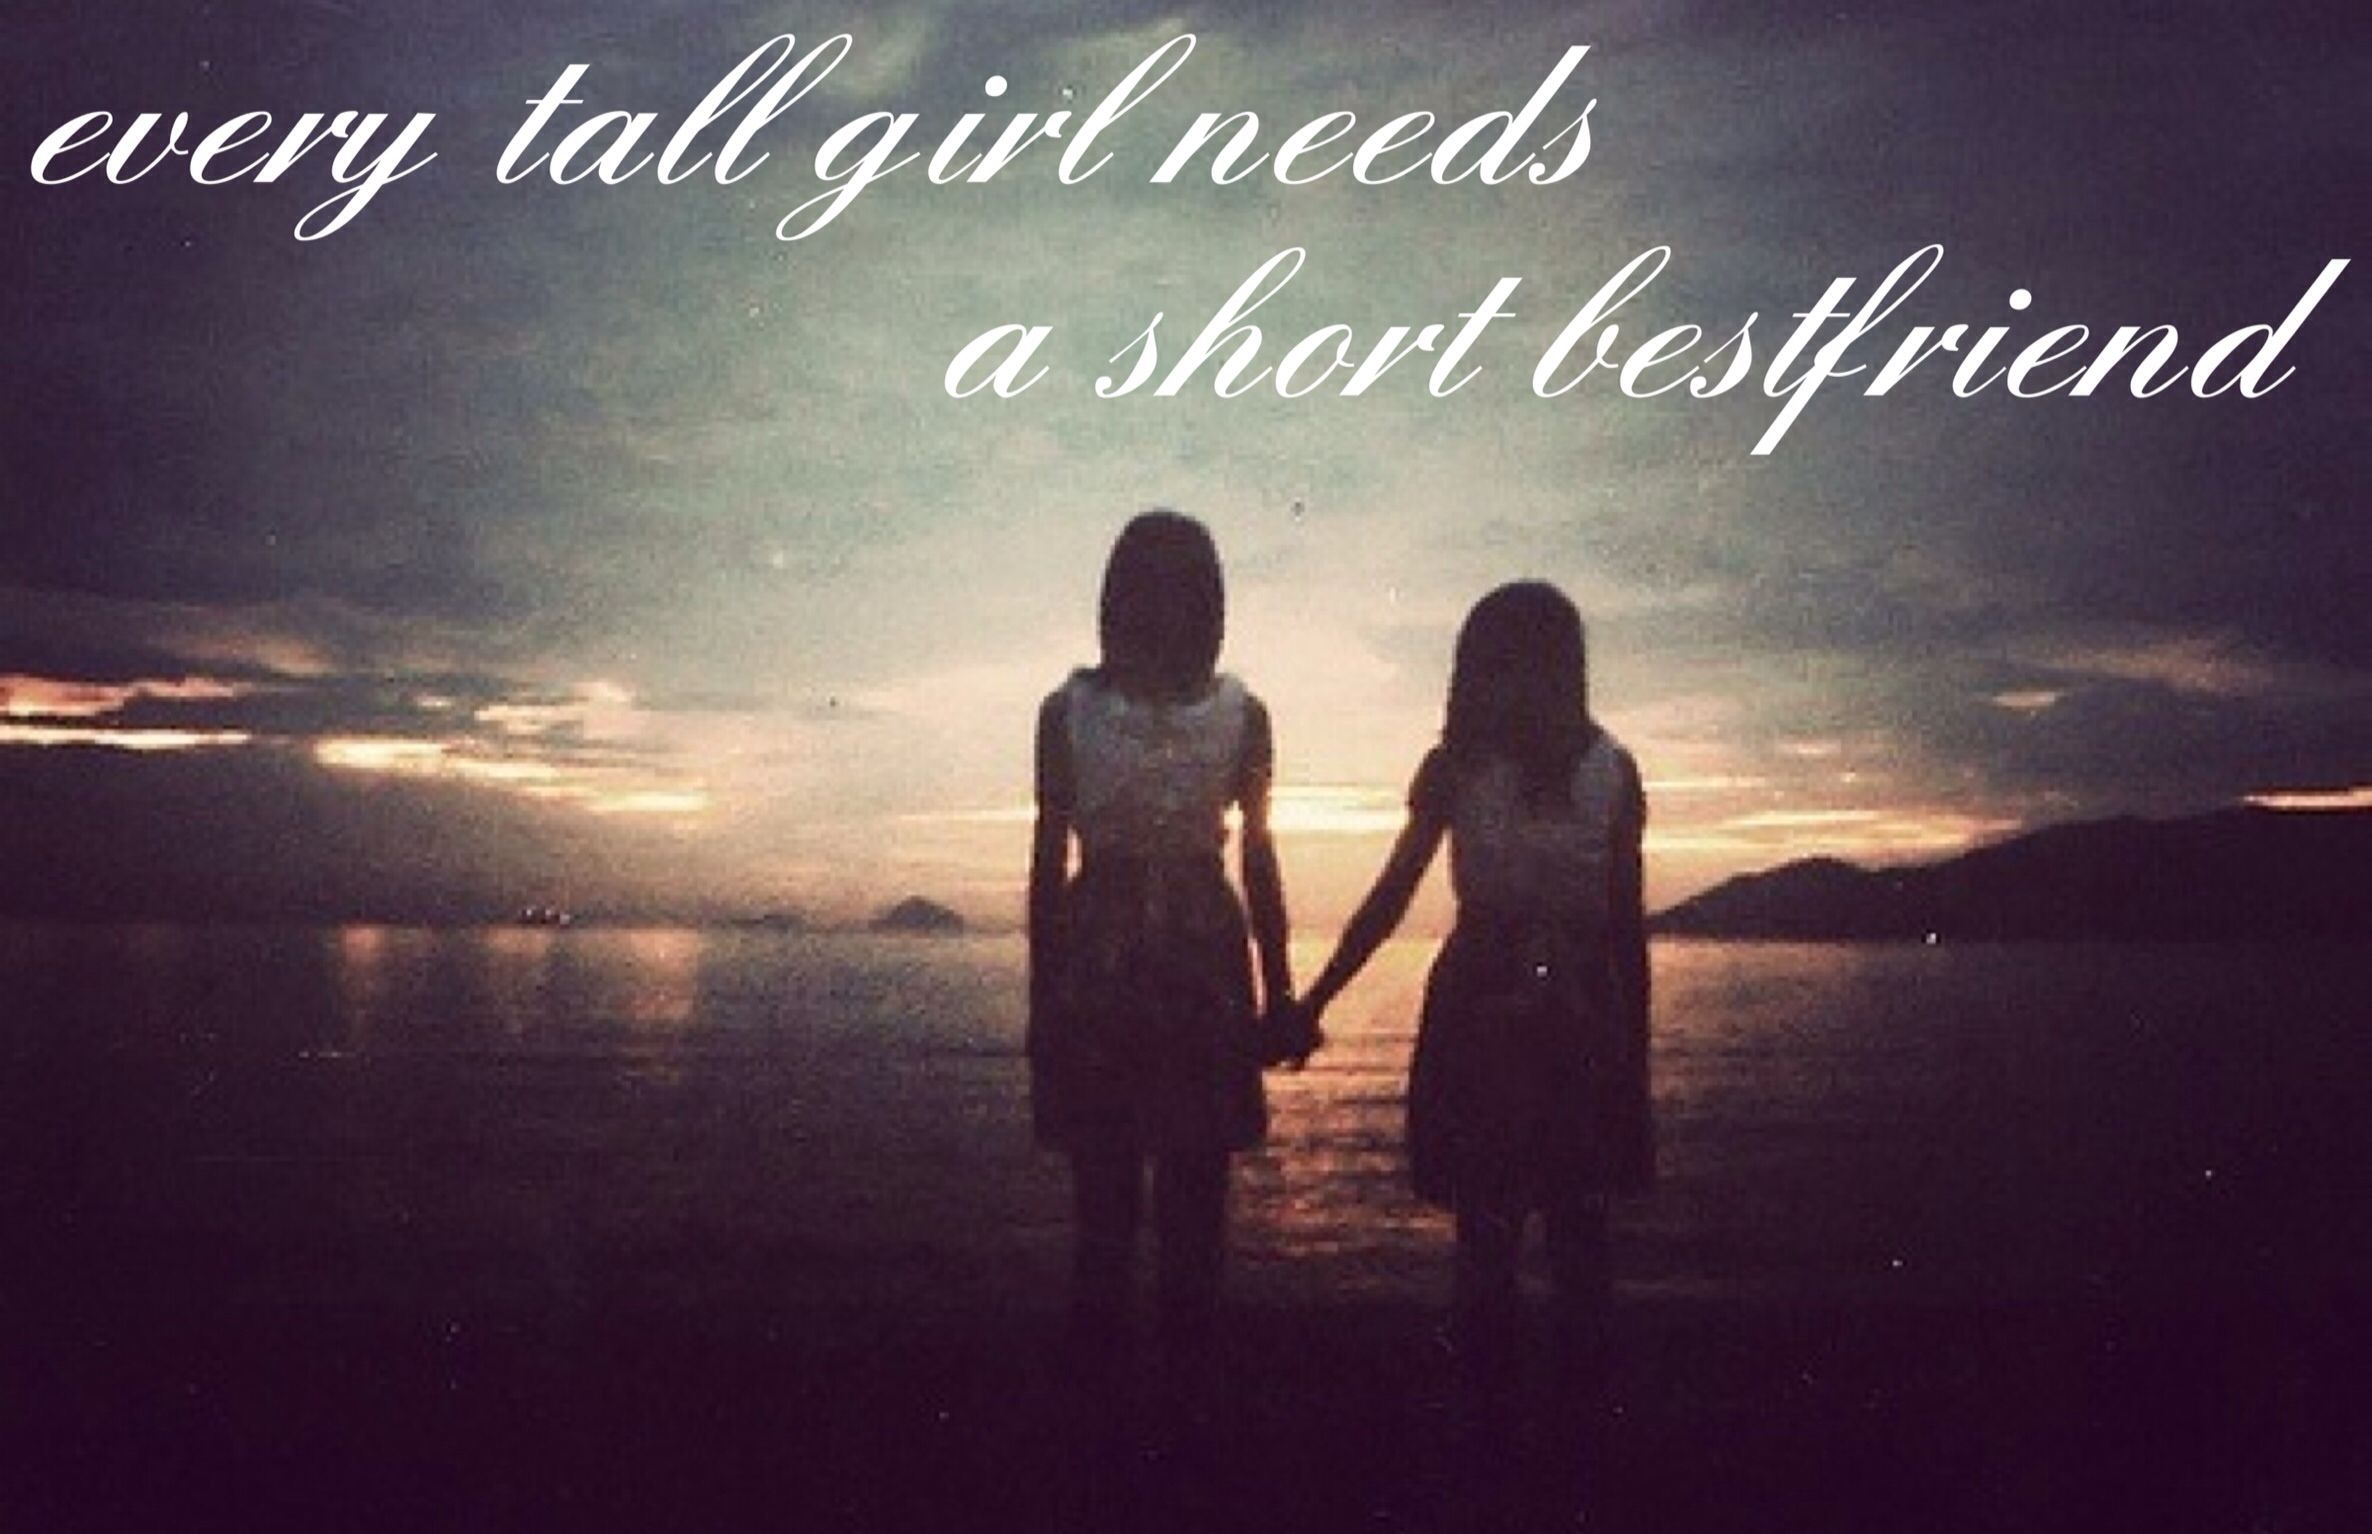 every tall girl needs a short bestfriend | Photo, Best ...